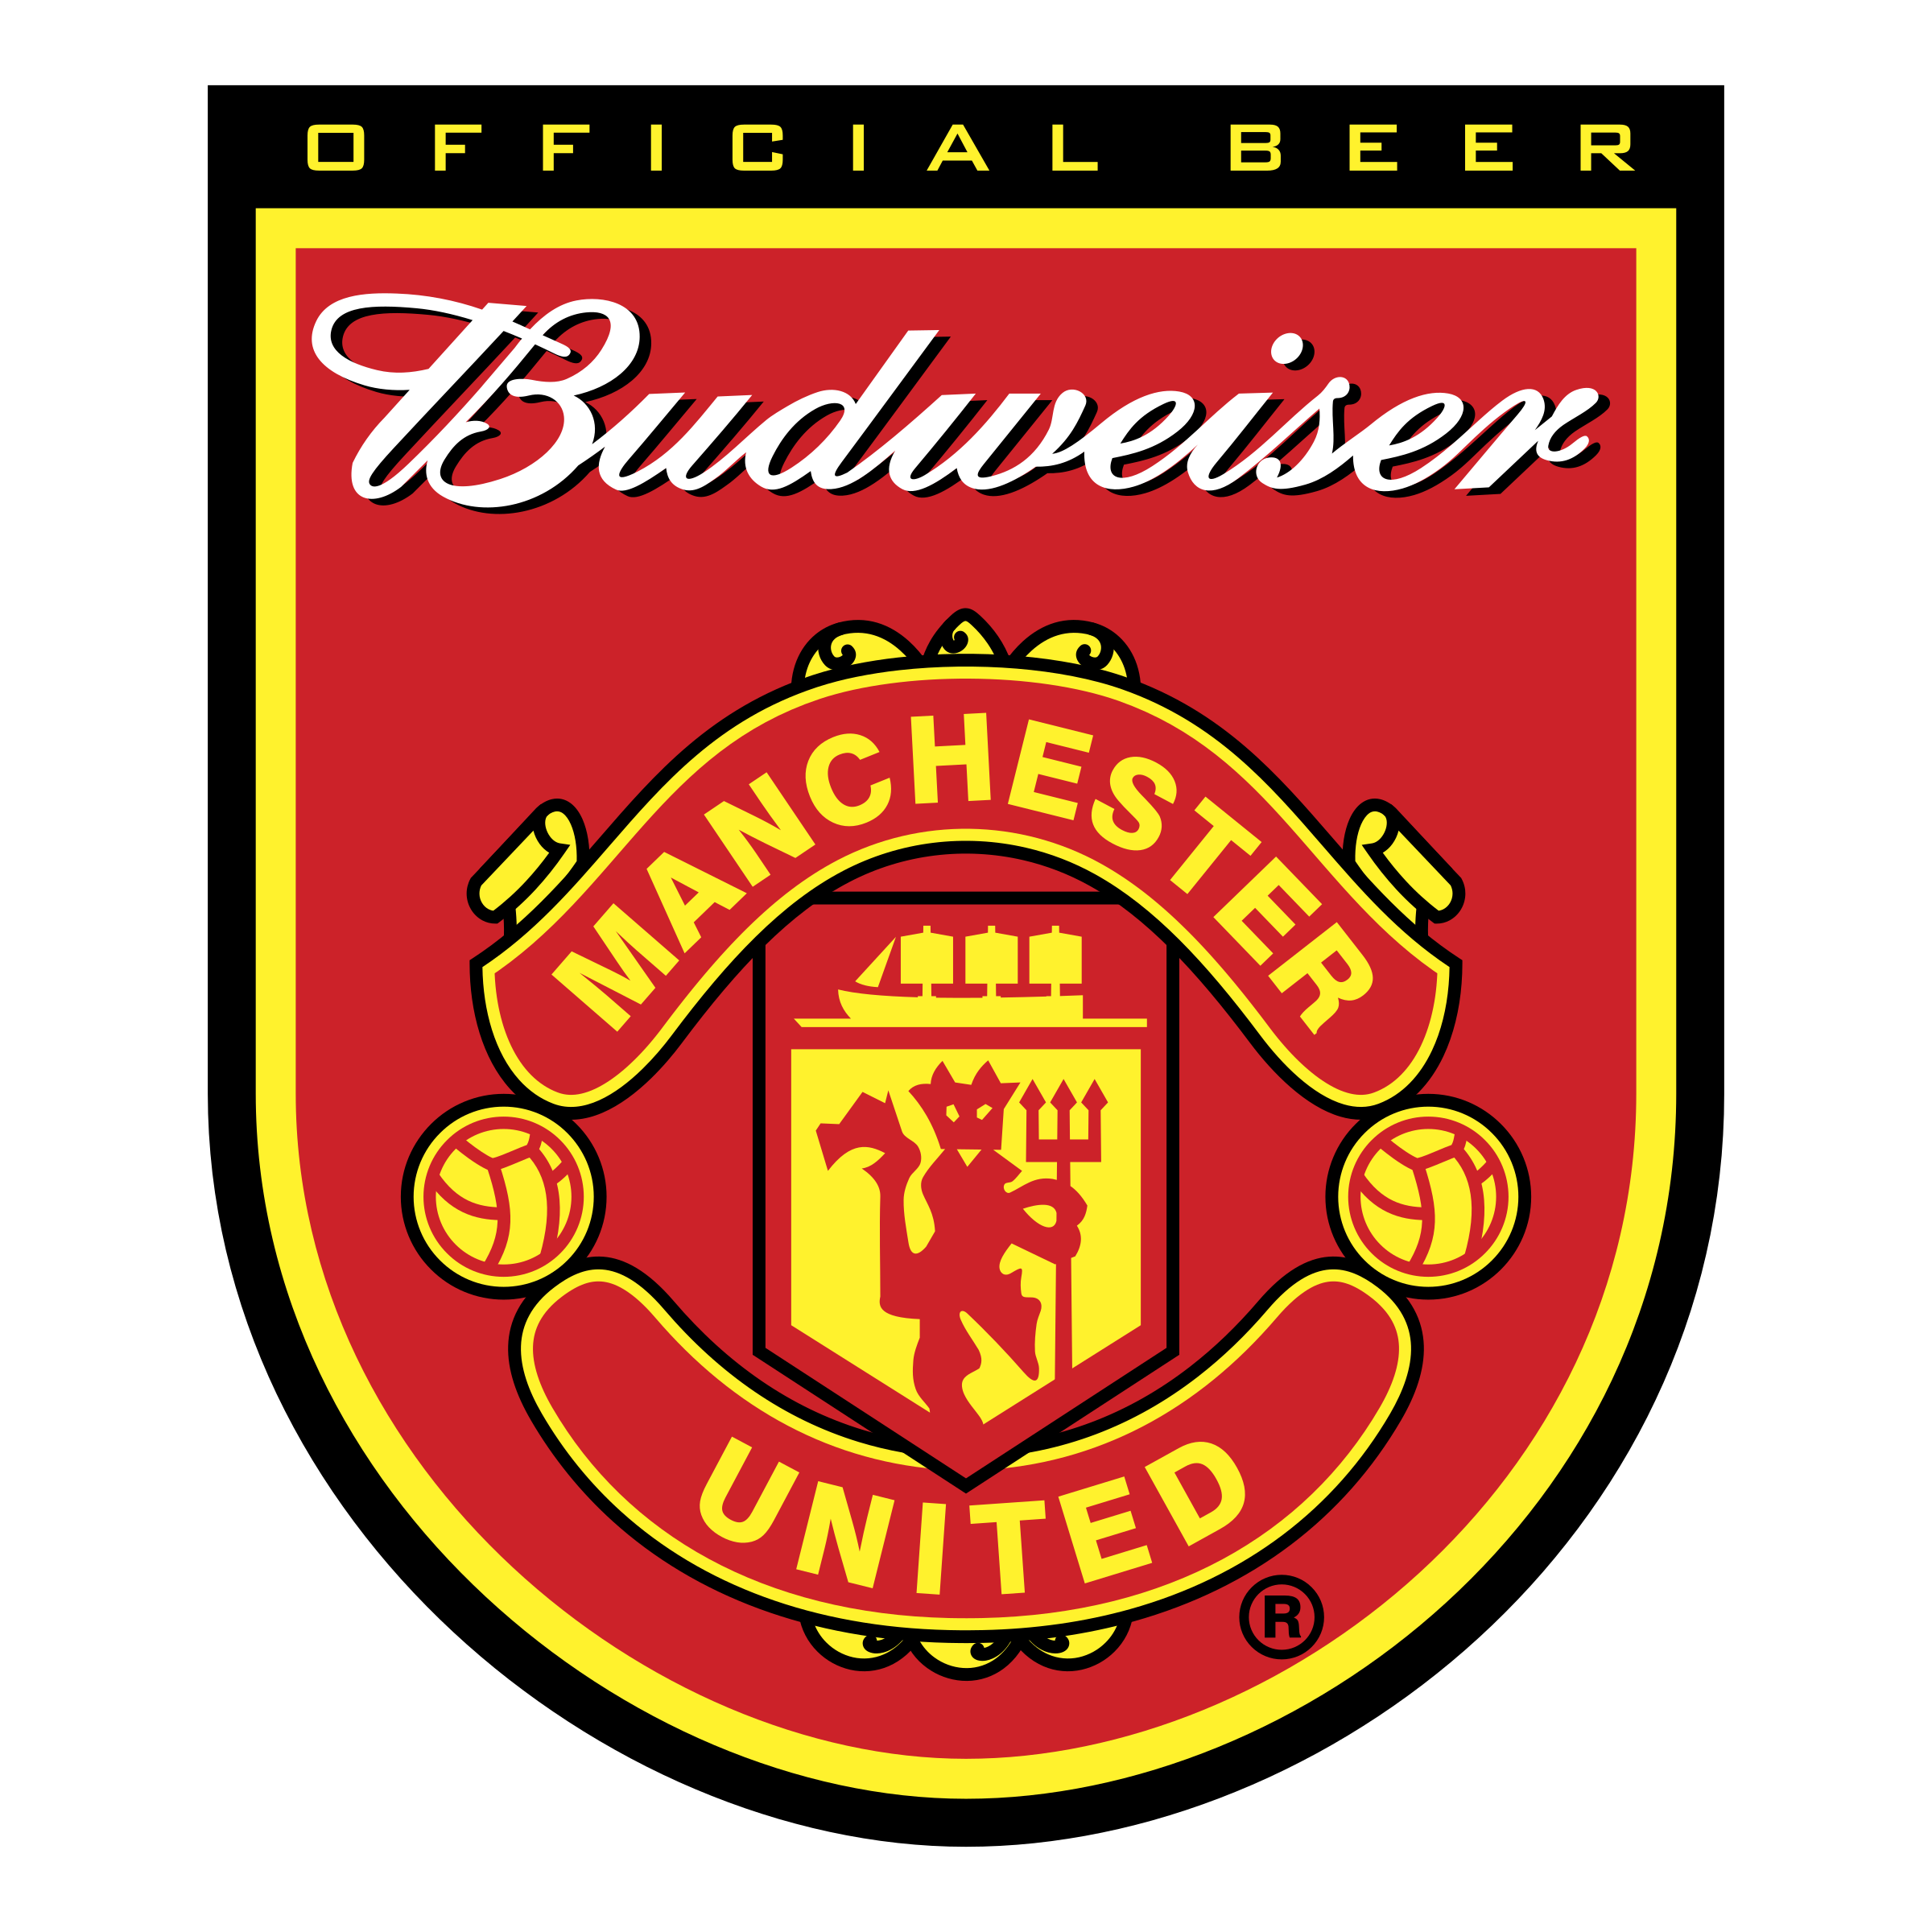 manchester united logo png images football club free download free transparent png logos manchester united logo png images